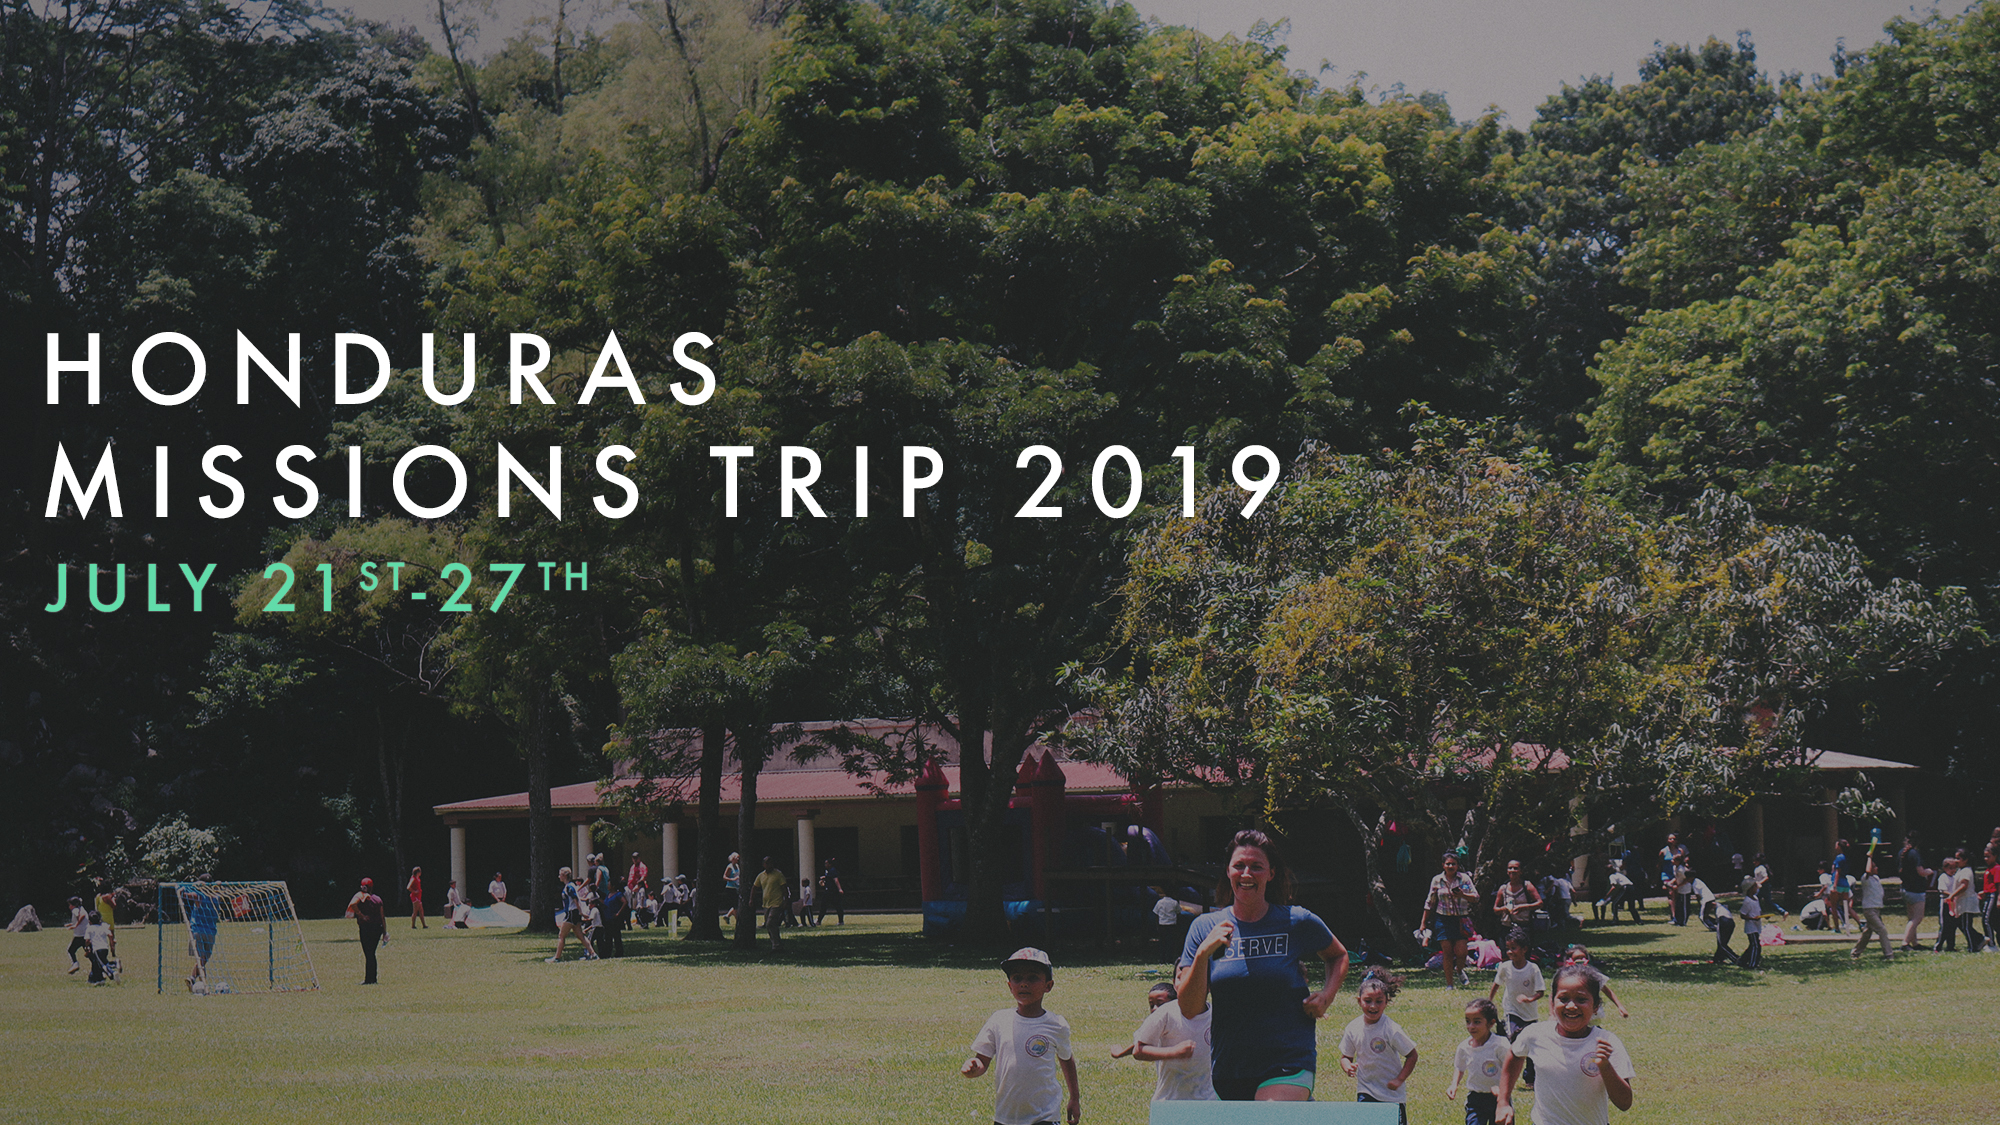 Deadline to sign up for the Honduras Mission Trip is fast approaching. You must have your Deposit in by April 14 to participant in this years trip. To sign up today, click below.